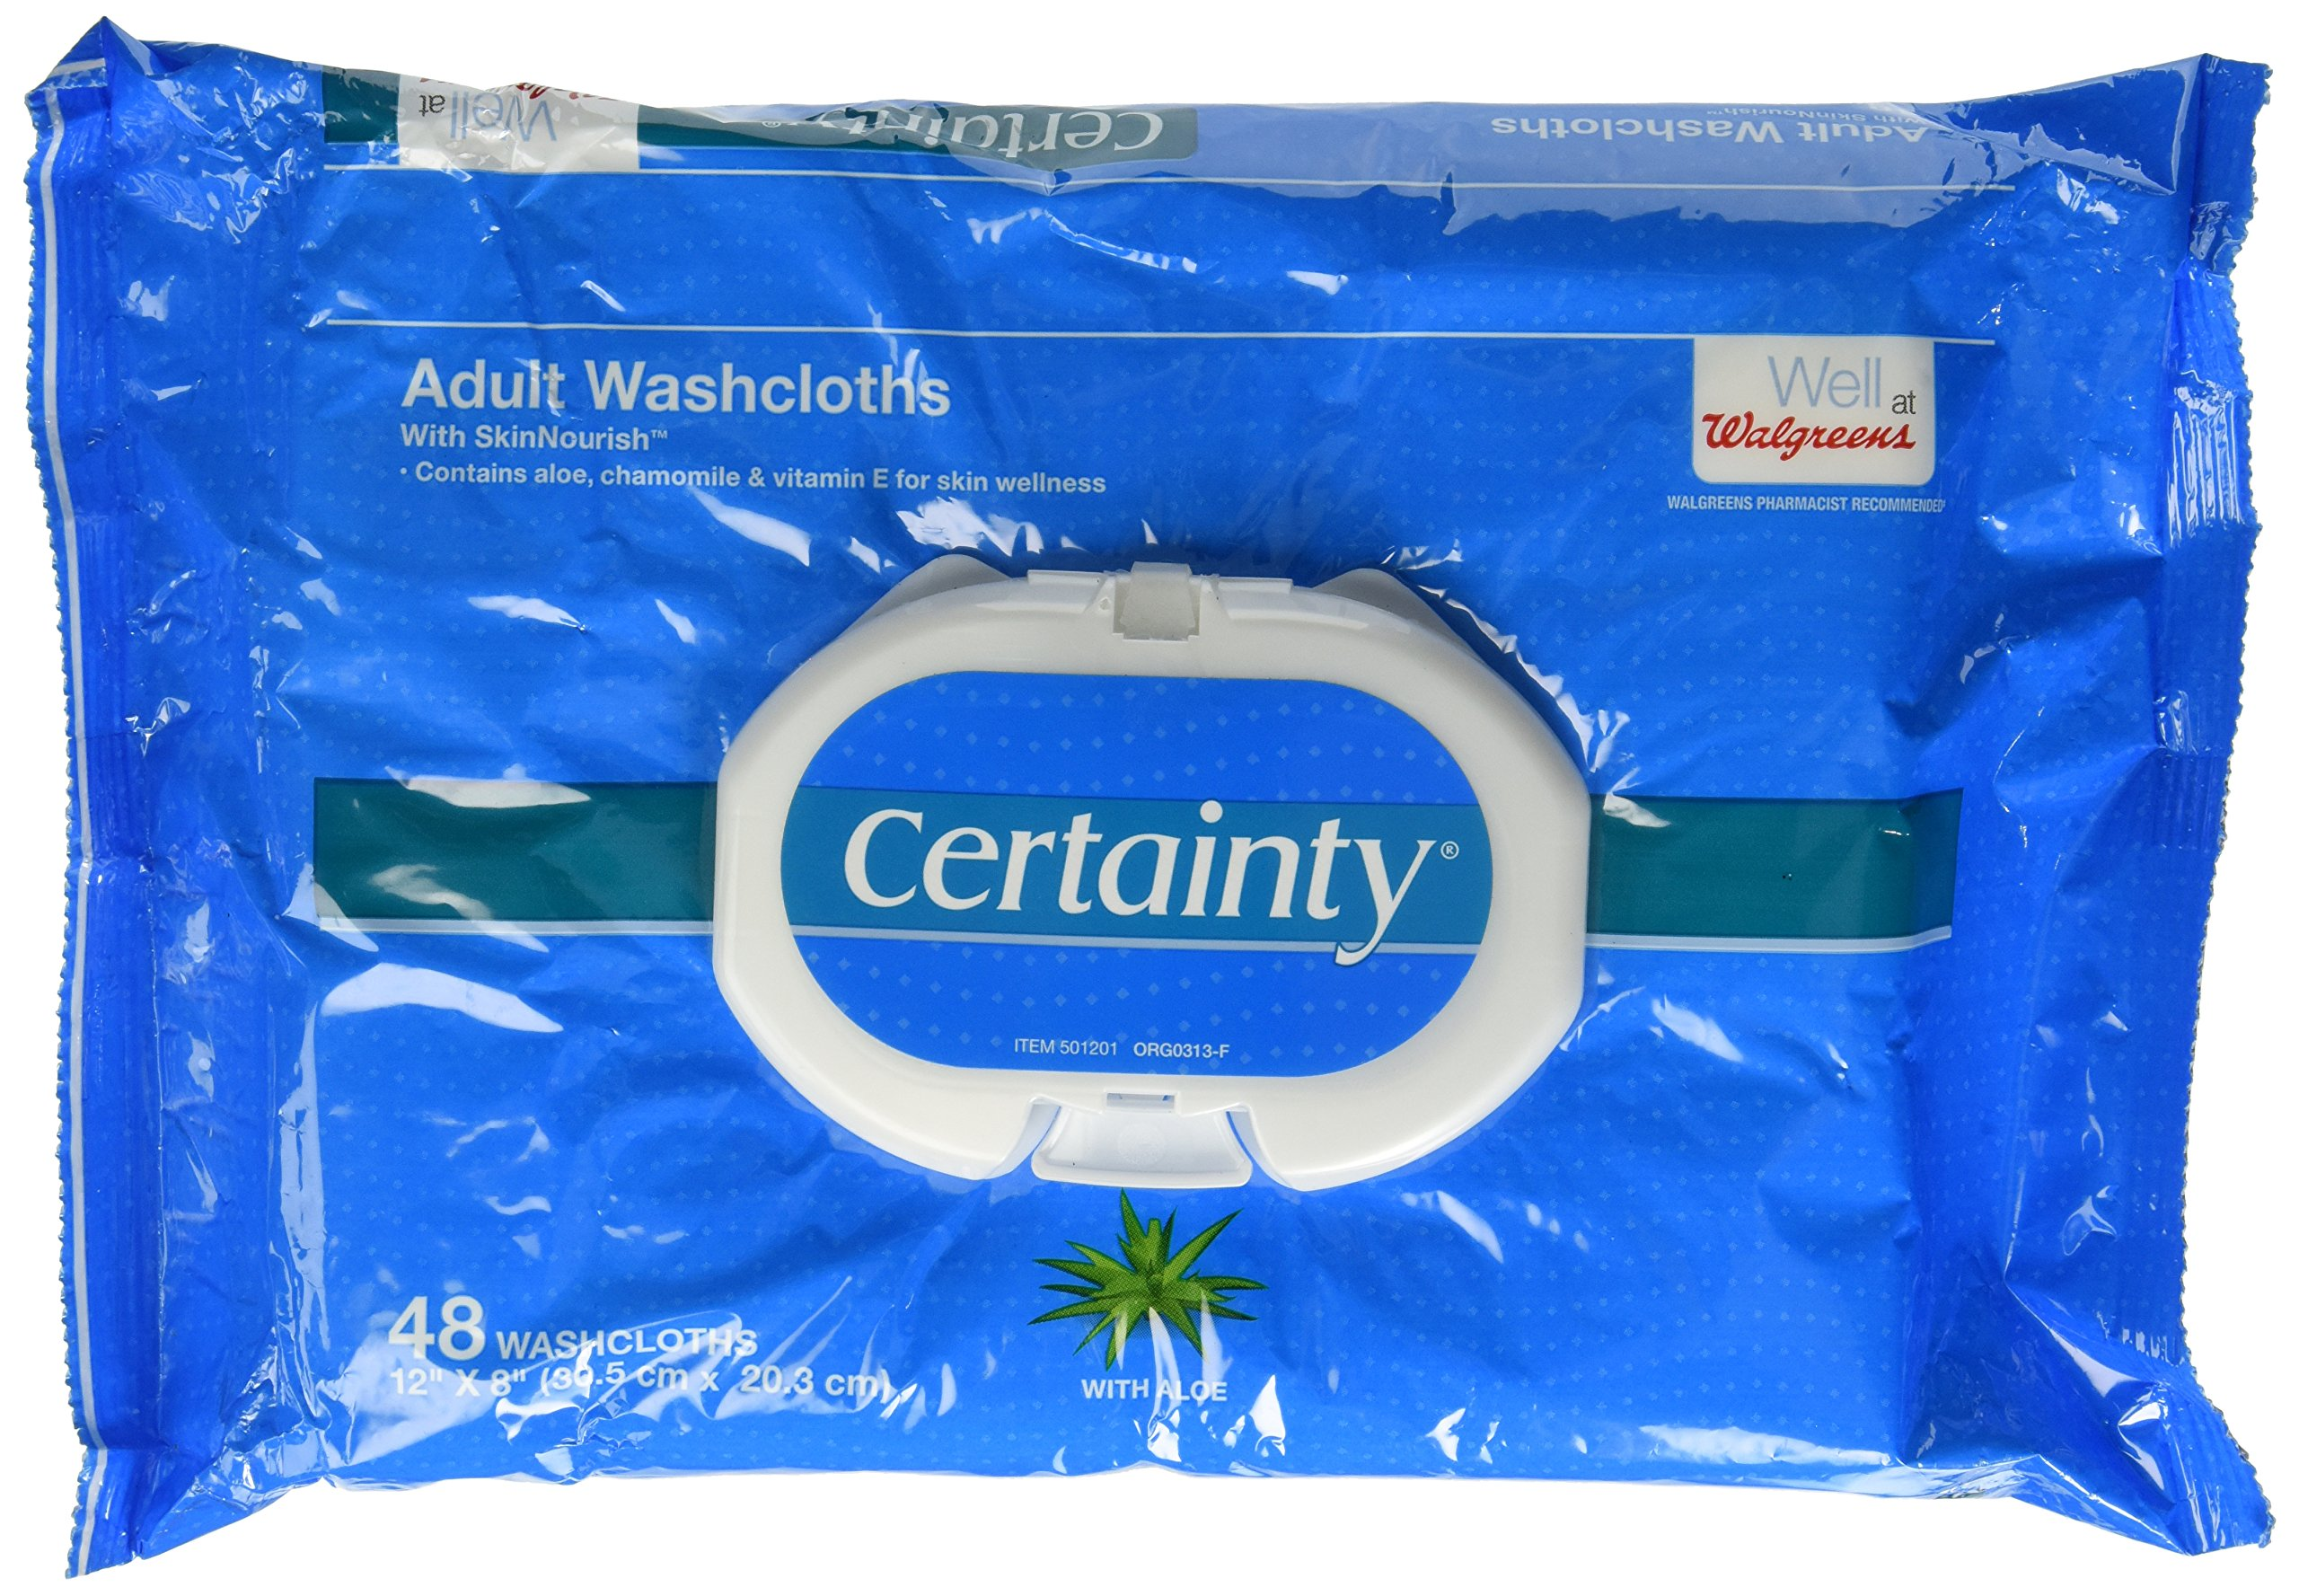 Walgreens Certainty Adult Disposable Washcloths, 48 Washcloths (Pack of 3)